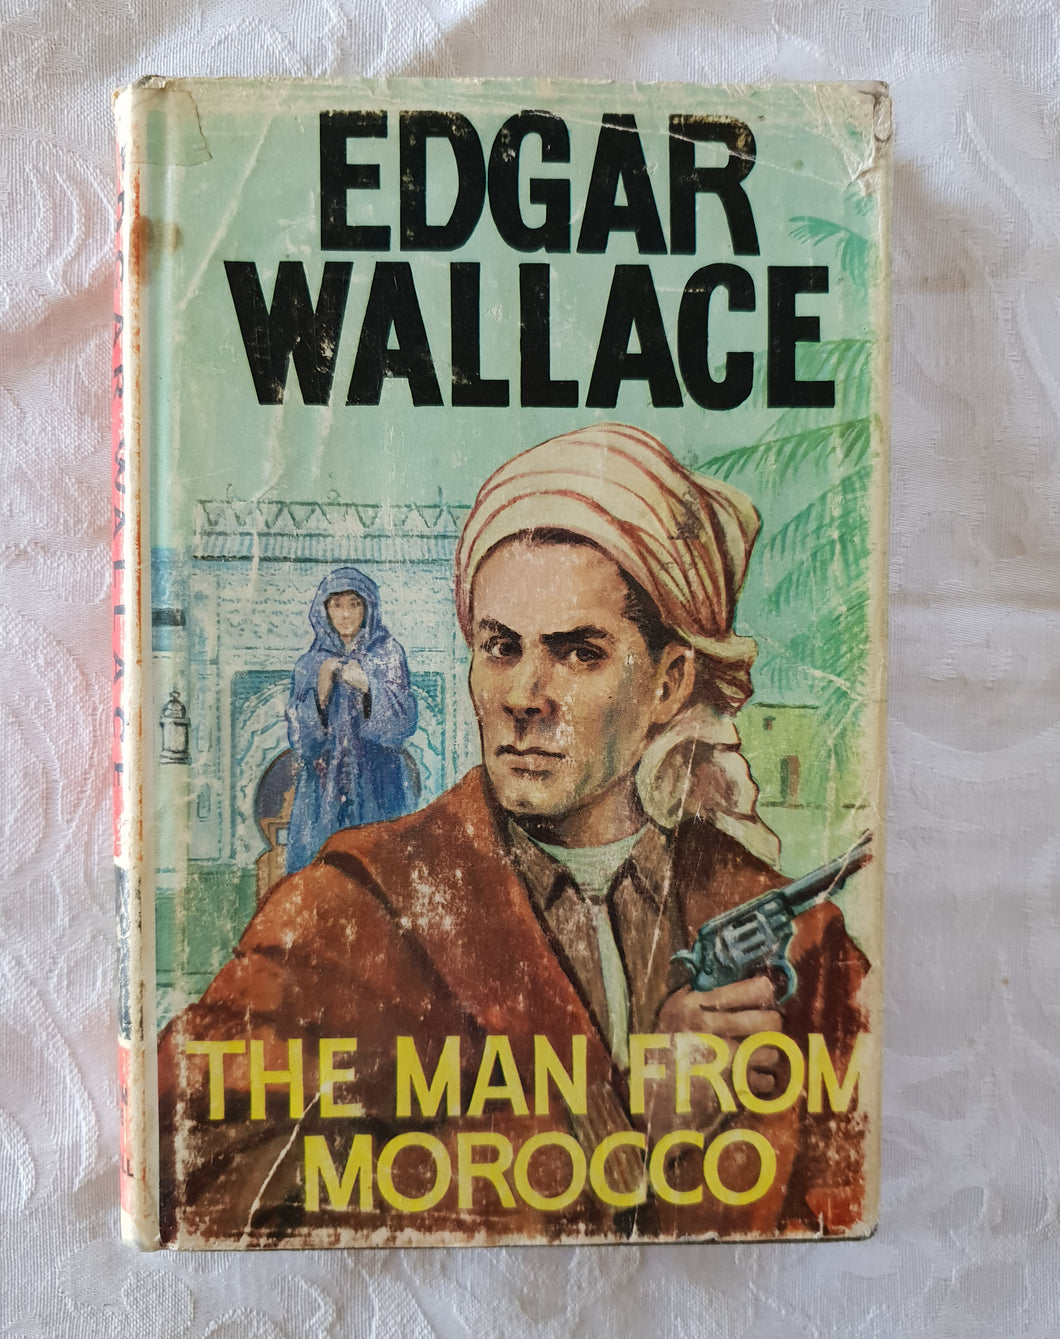 The Man From Morocco by Edgar Wallace